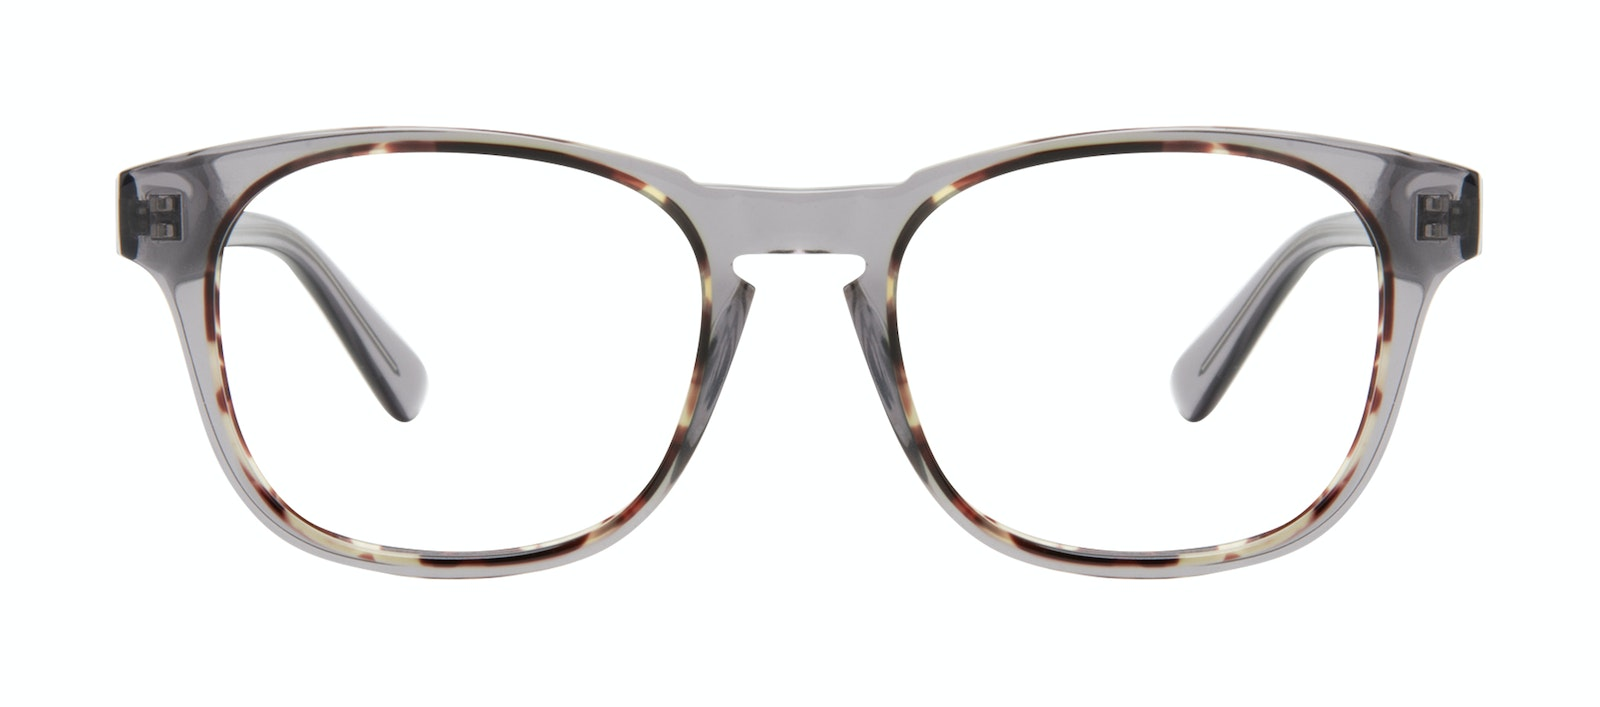 Affordable Fashion Glasses Square Eyeglasses Men Outline Smokey Tort Front